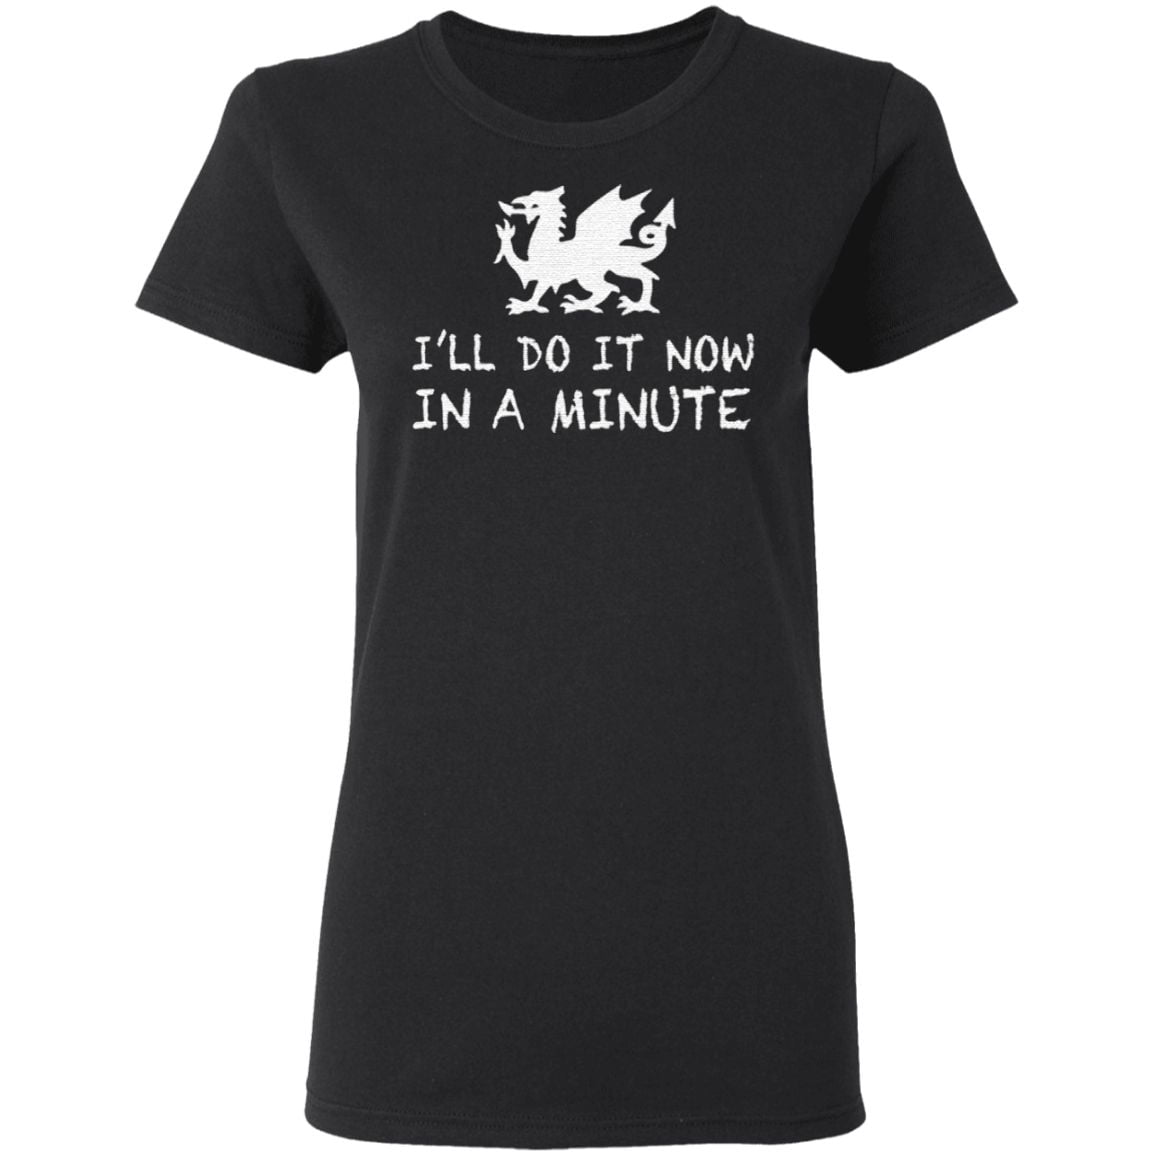 Dragon I'll do it now in a minute t shirt